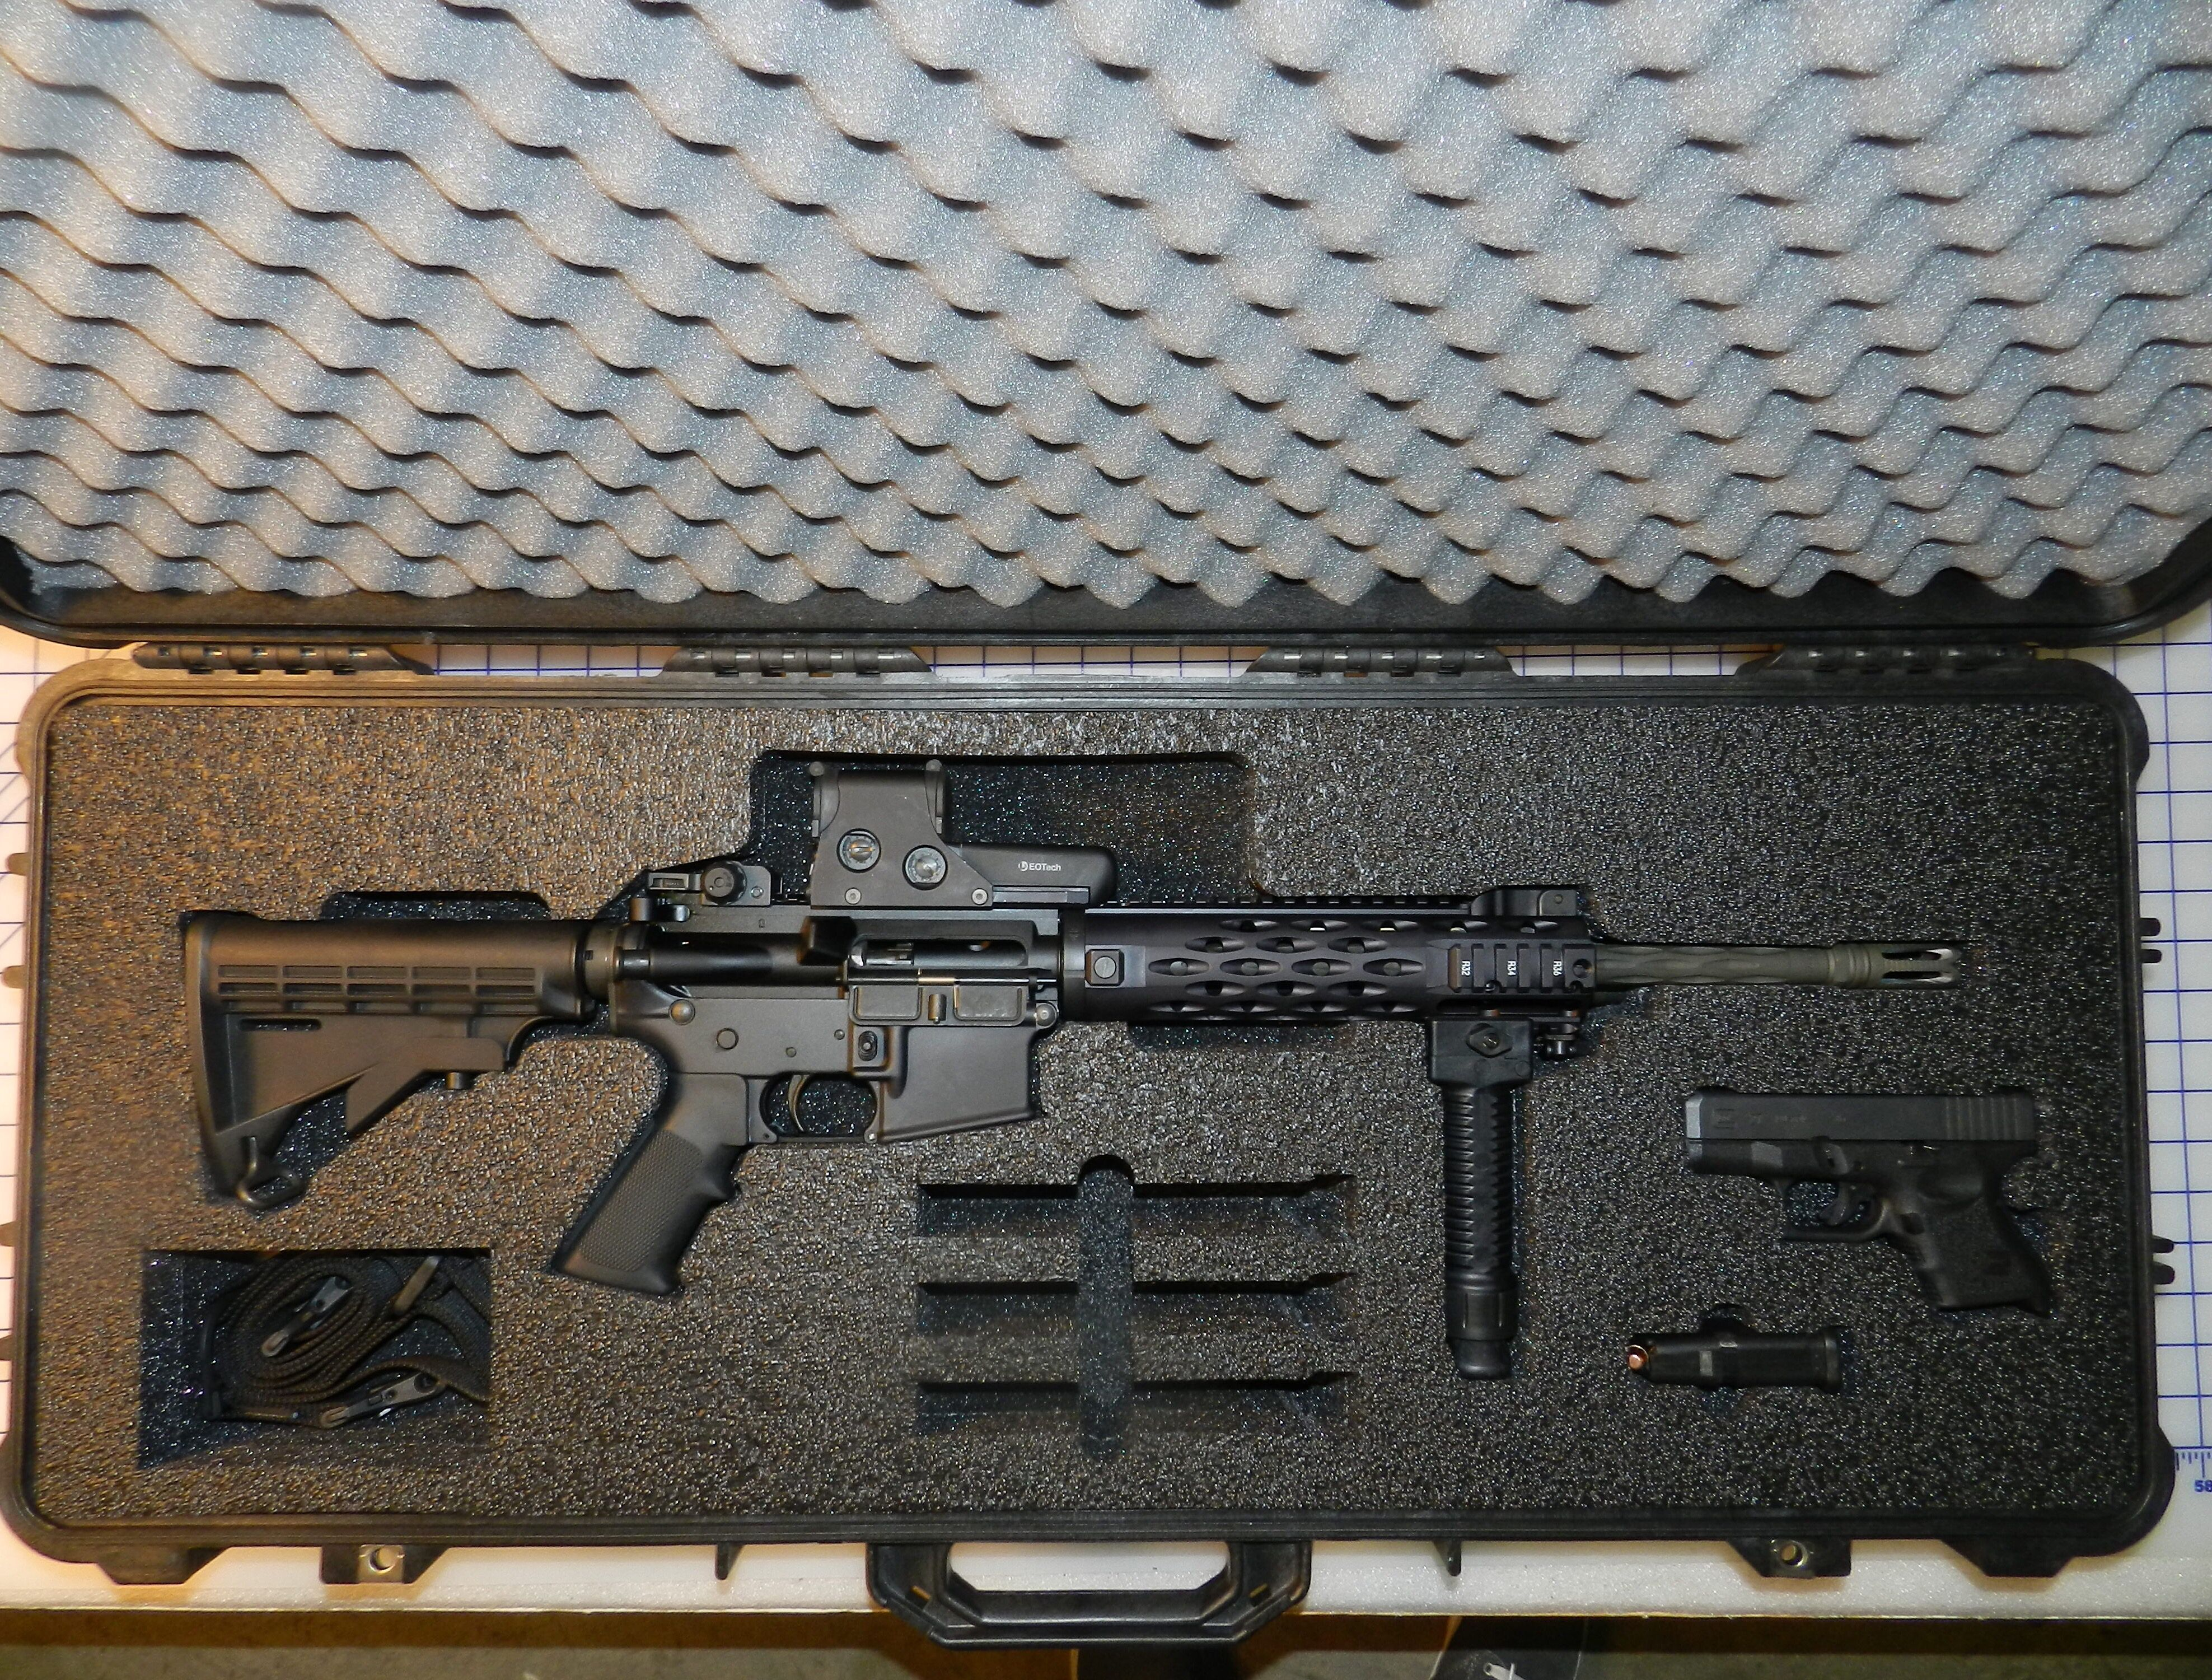 Pelican case and #customfoam for a Colt ar-15 and Glock 27